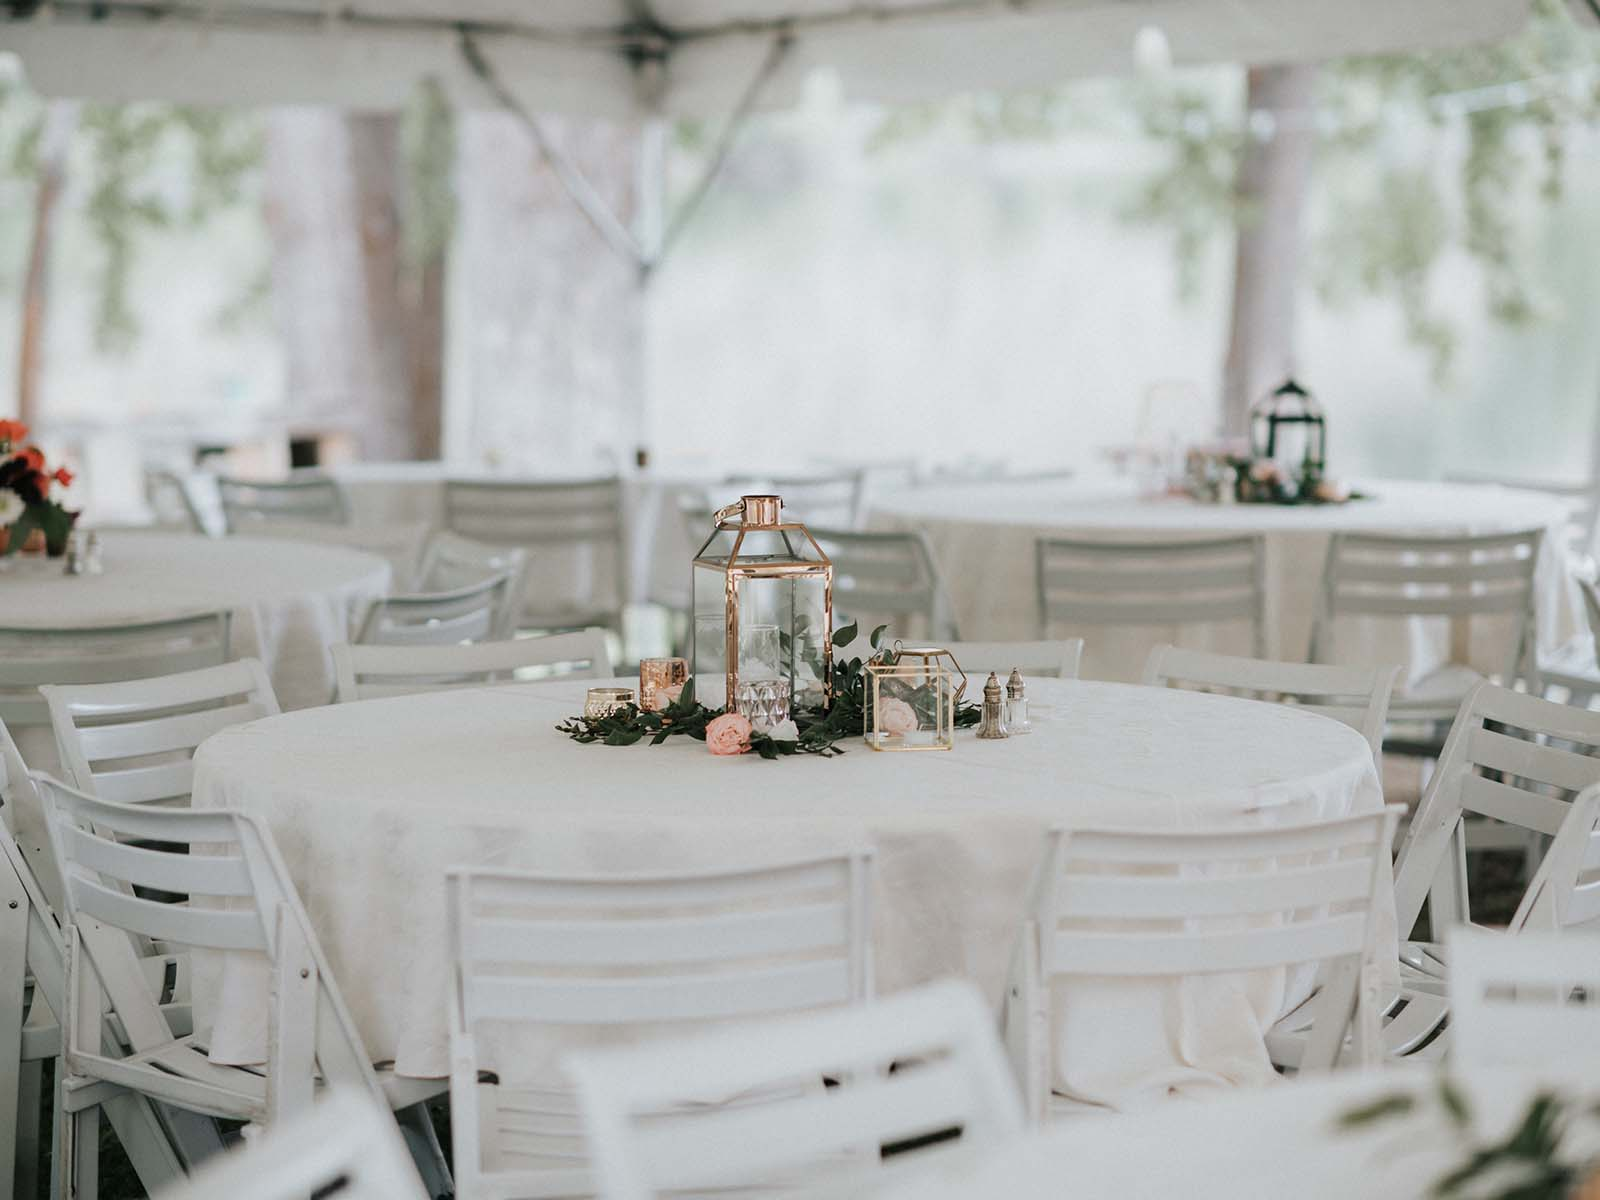 Wedding tent banquet style